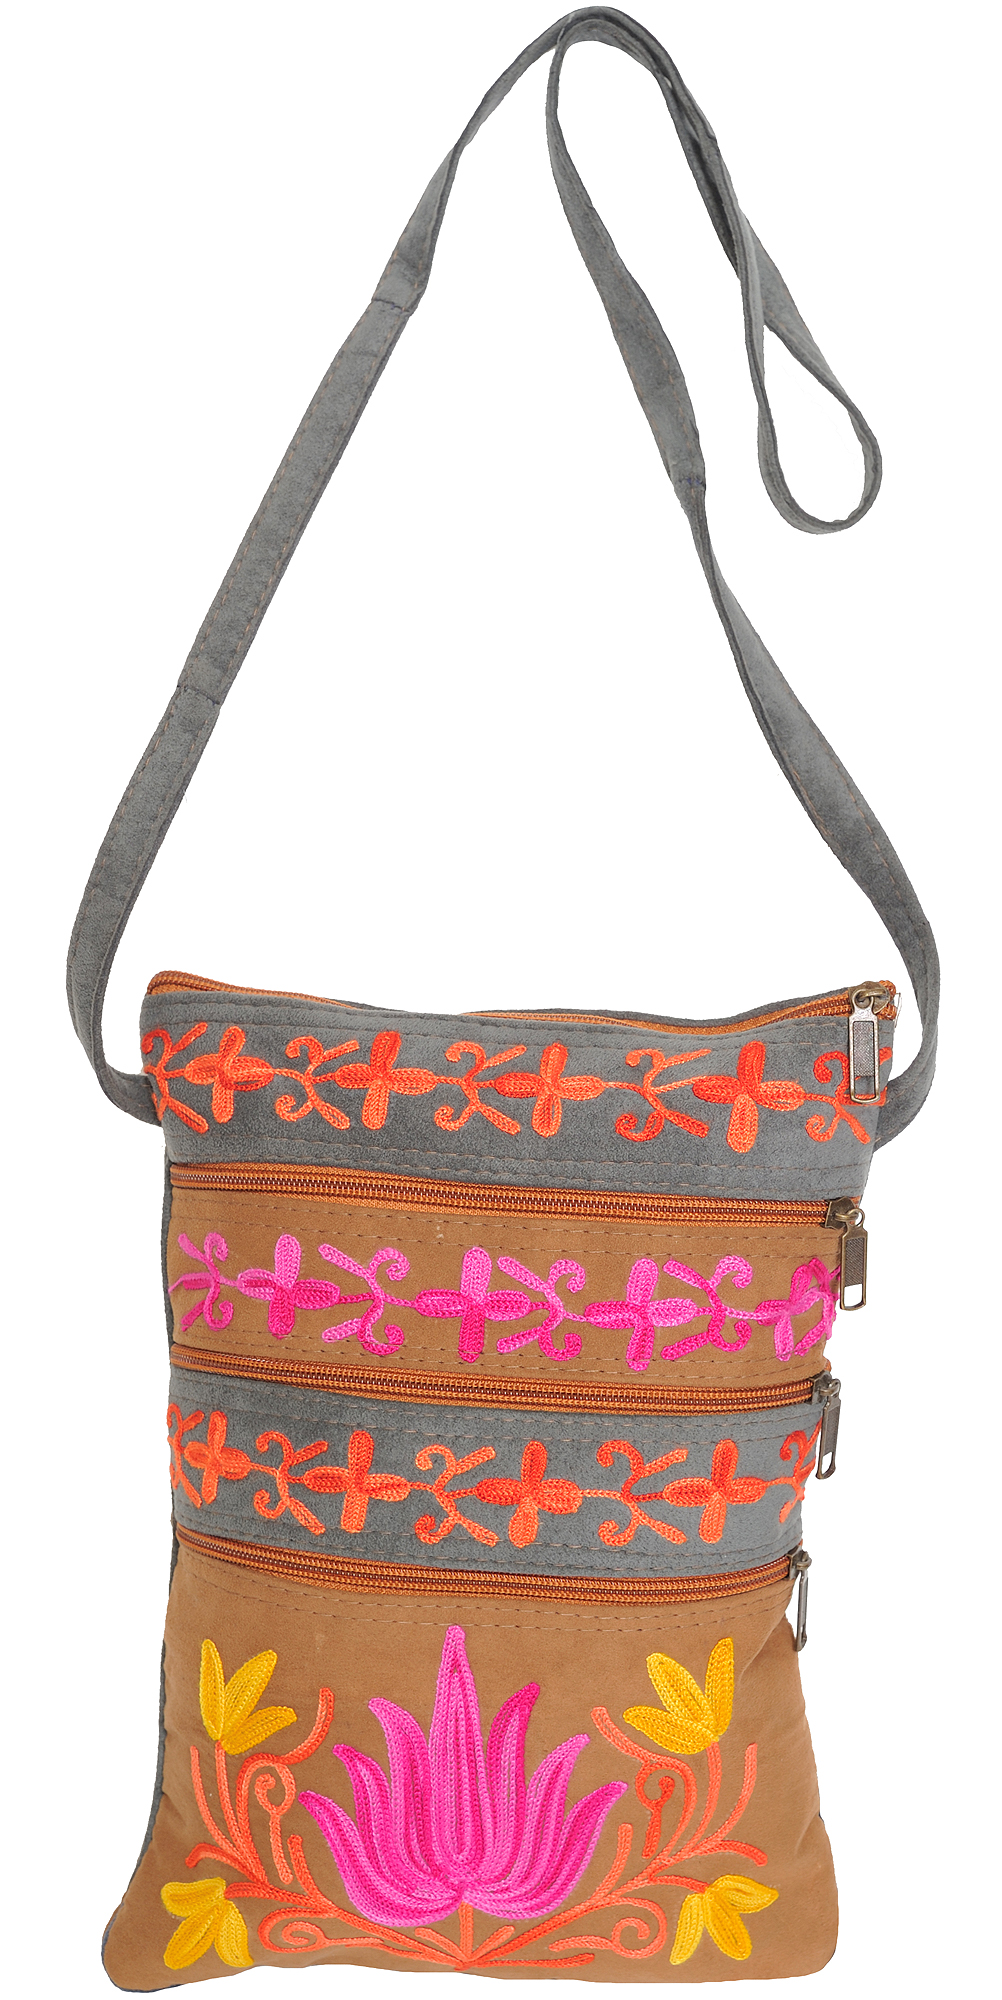 Gray and taupe shoulder bag from kashmir with ari embroidery